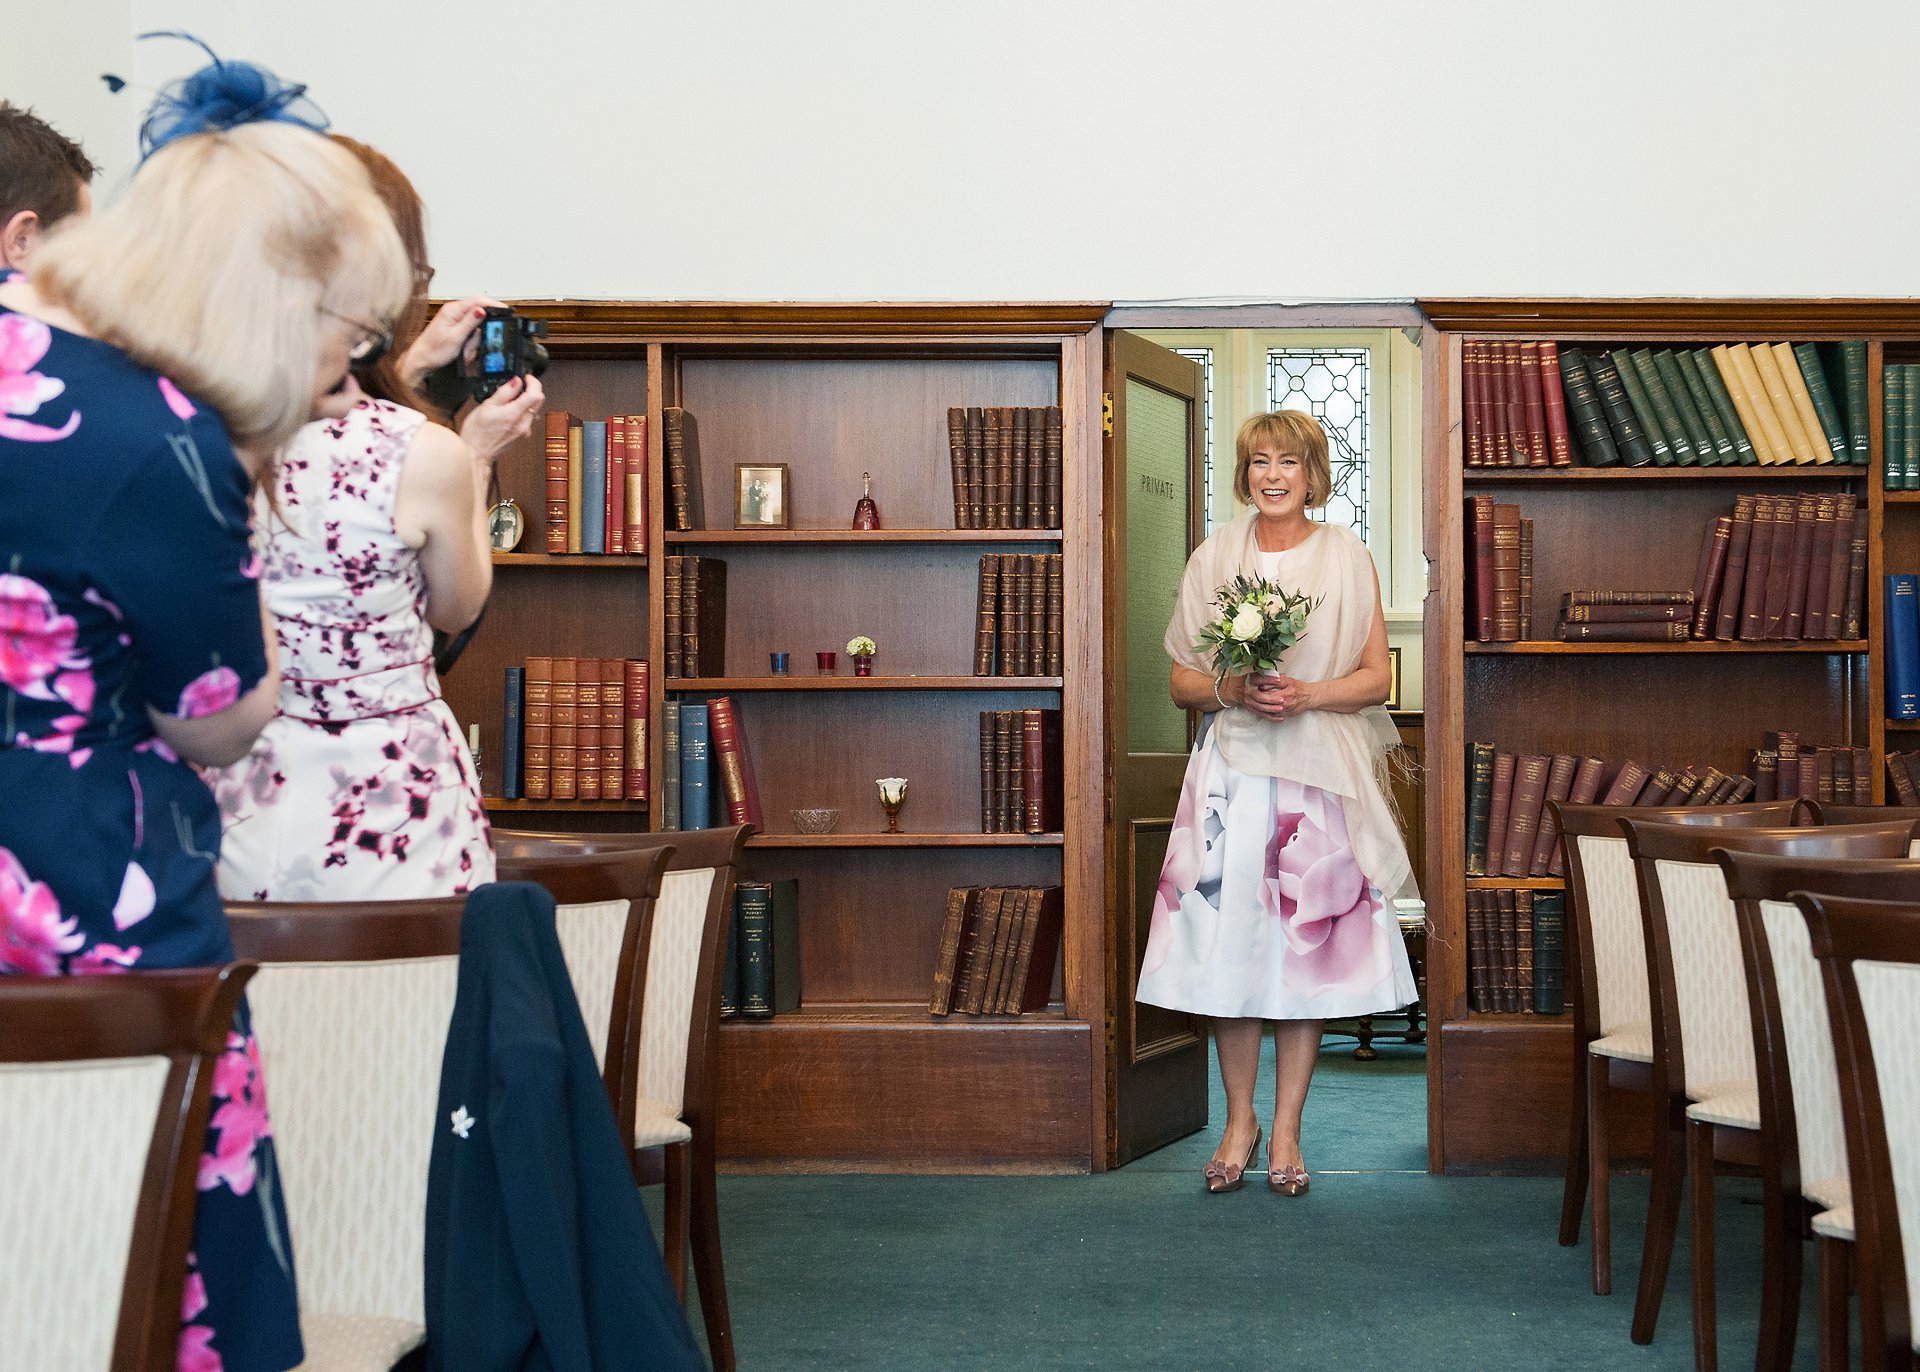 Melanie enters the Marylebone Room and walks down to aisle to join her husband-to-be for their civil marriage